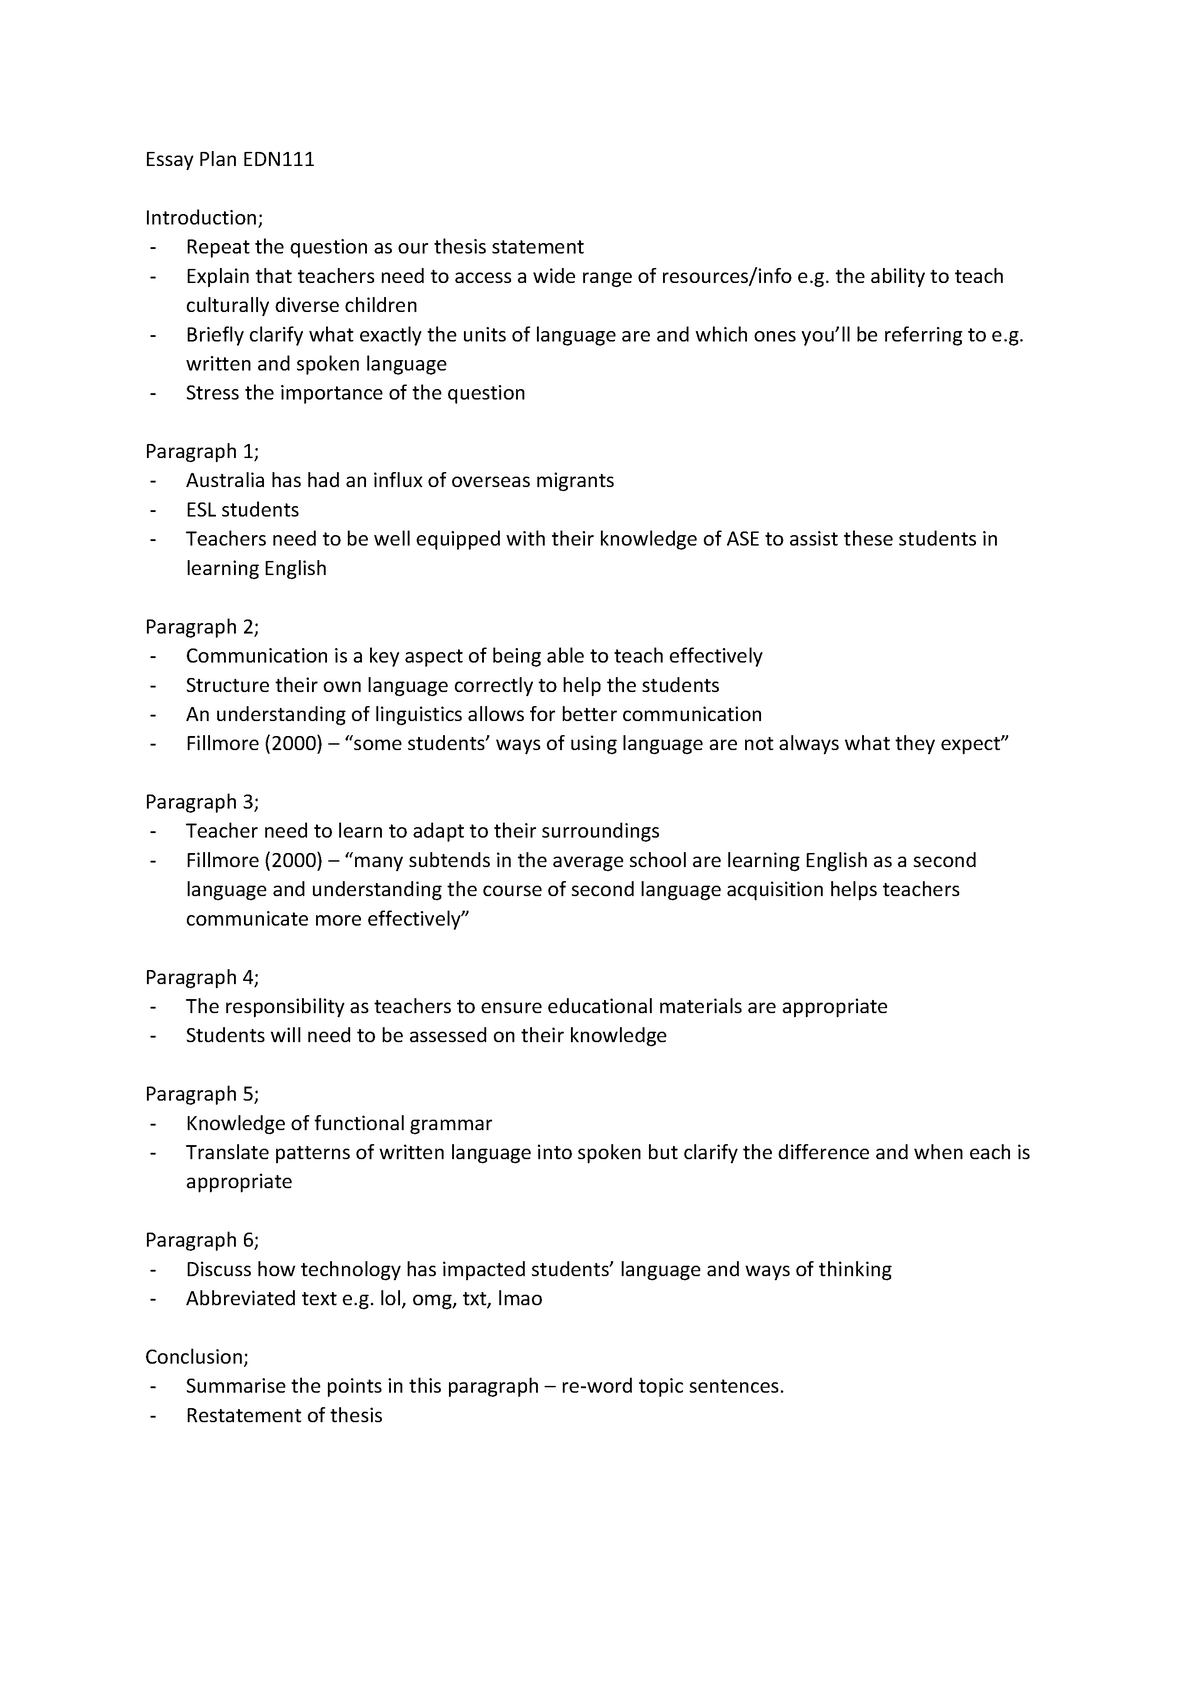 Business Etiquette Essay  Argumentative Essay Thesis also Mahatma Gandhi Essay In English Essay Plan And Essay  Edn  Murdoch  Studocu Expository Essay Thesis Statement